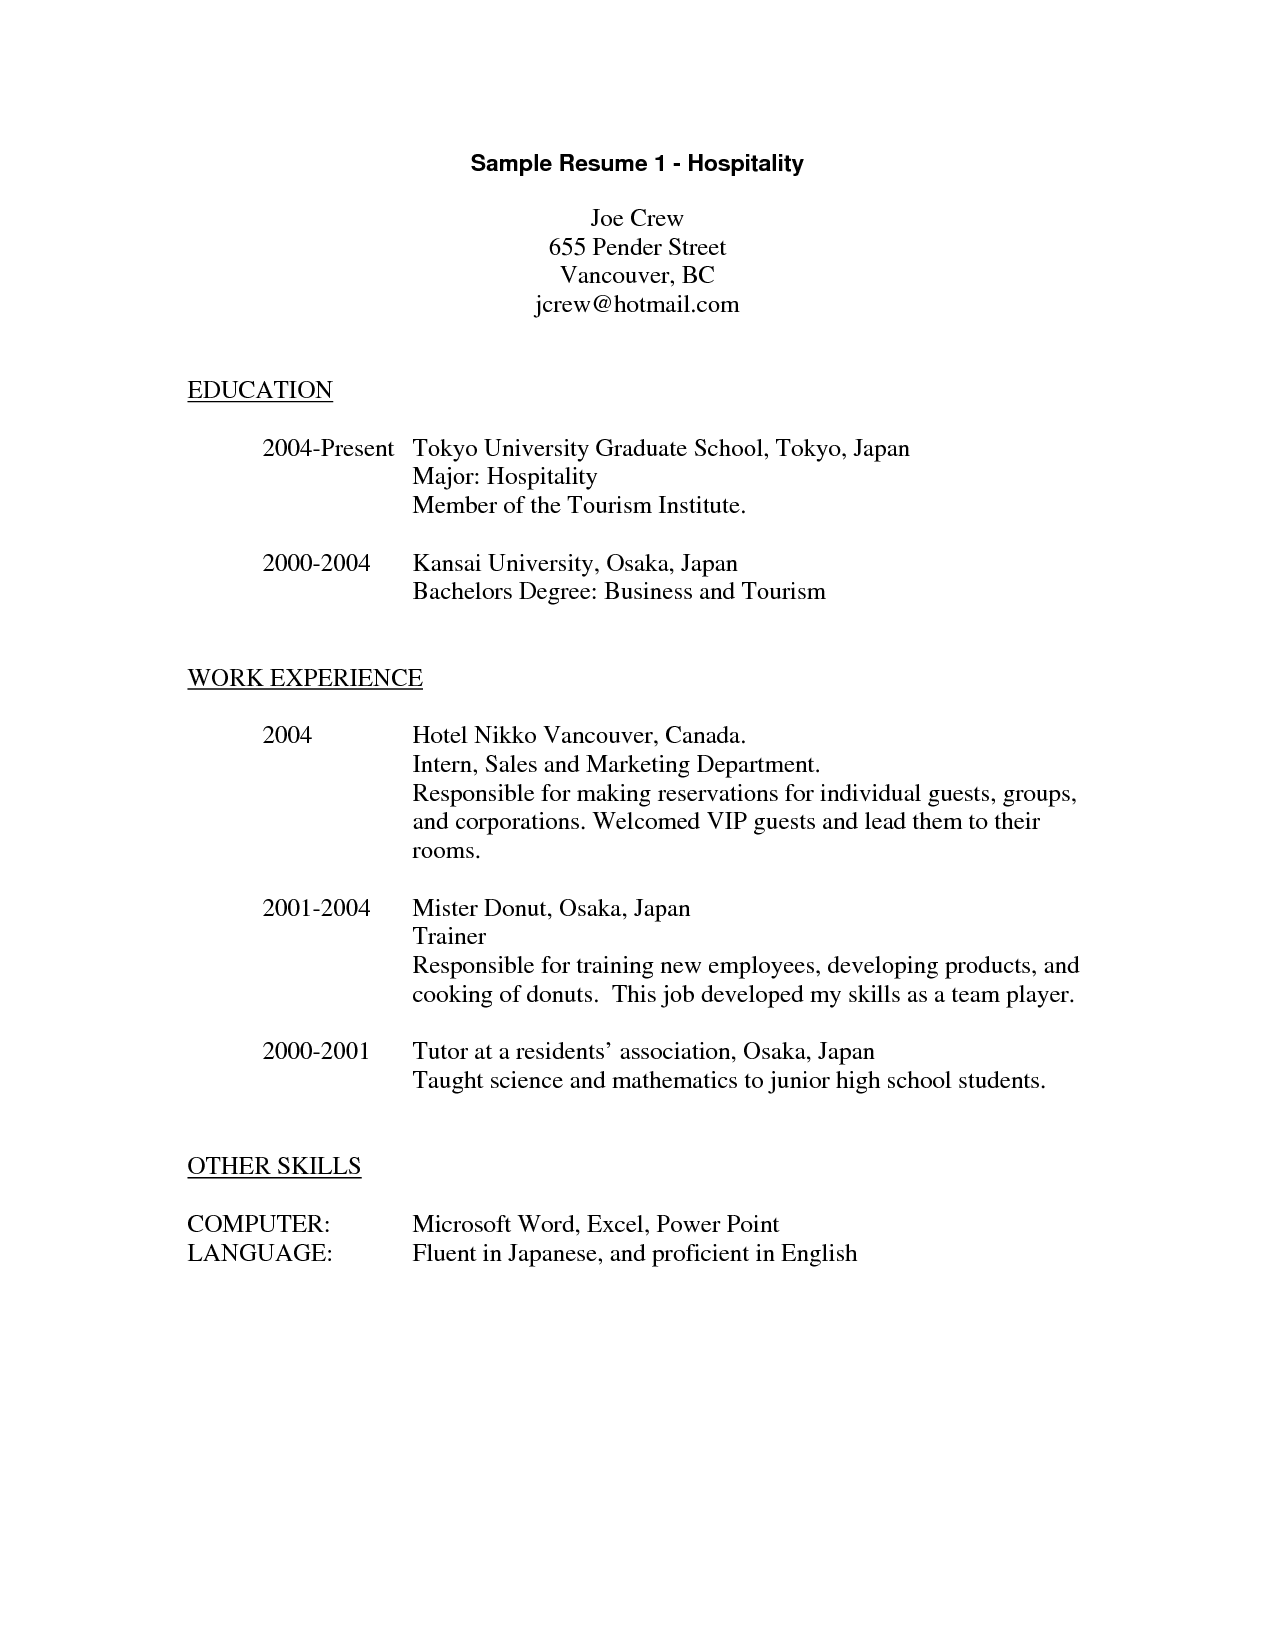 Resume Hospitality Skills For Resume sample resume for hospitality industry jobs sample